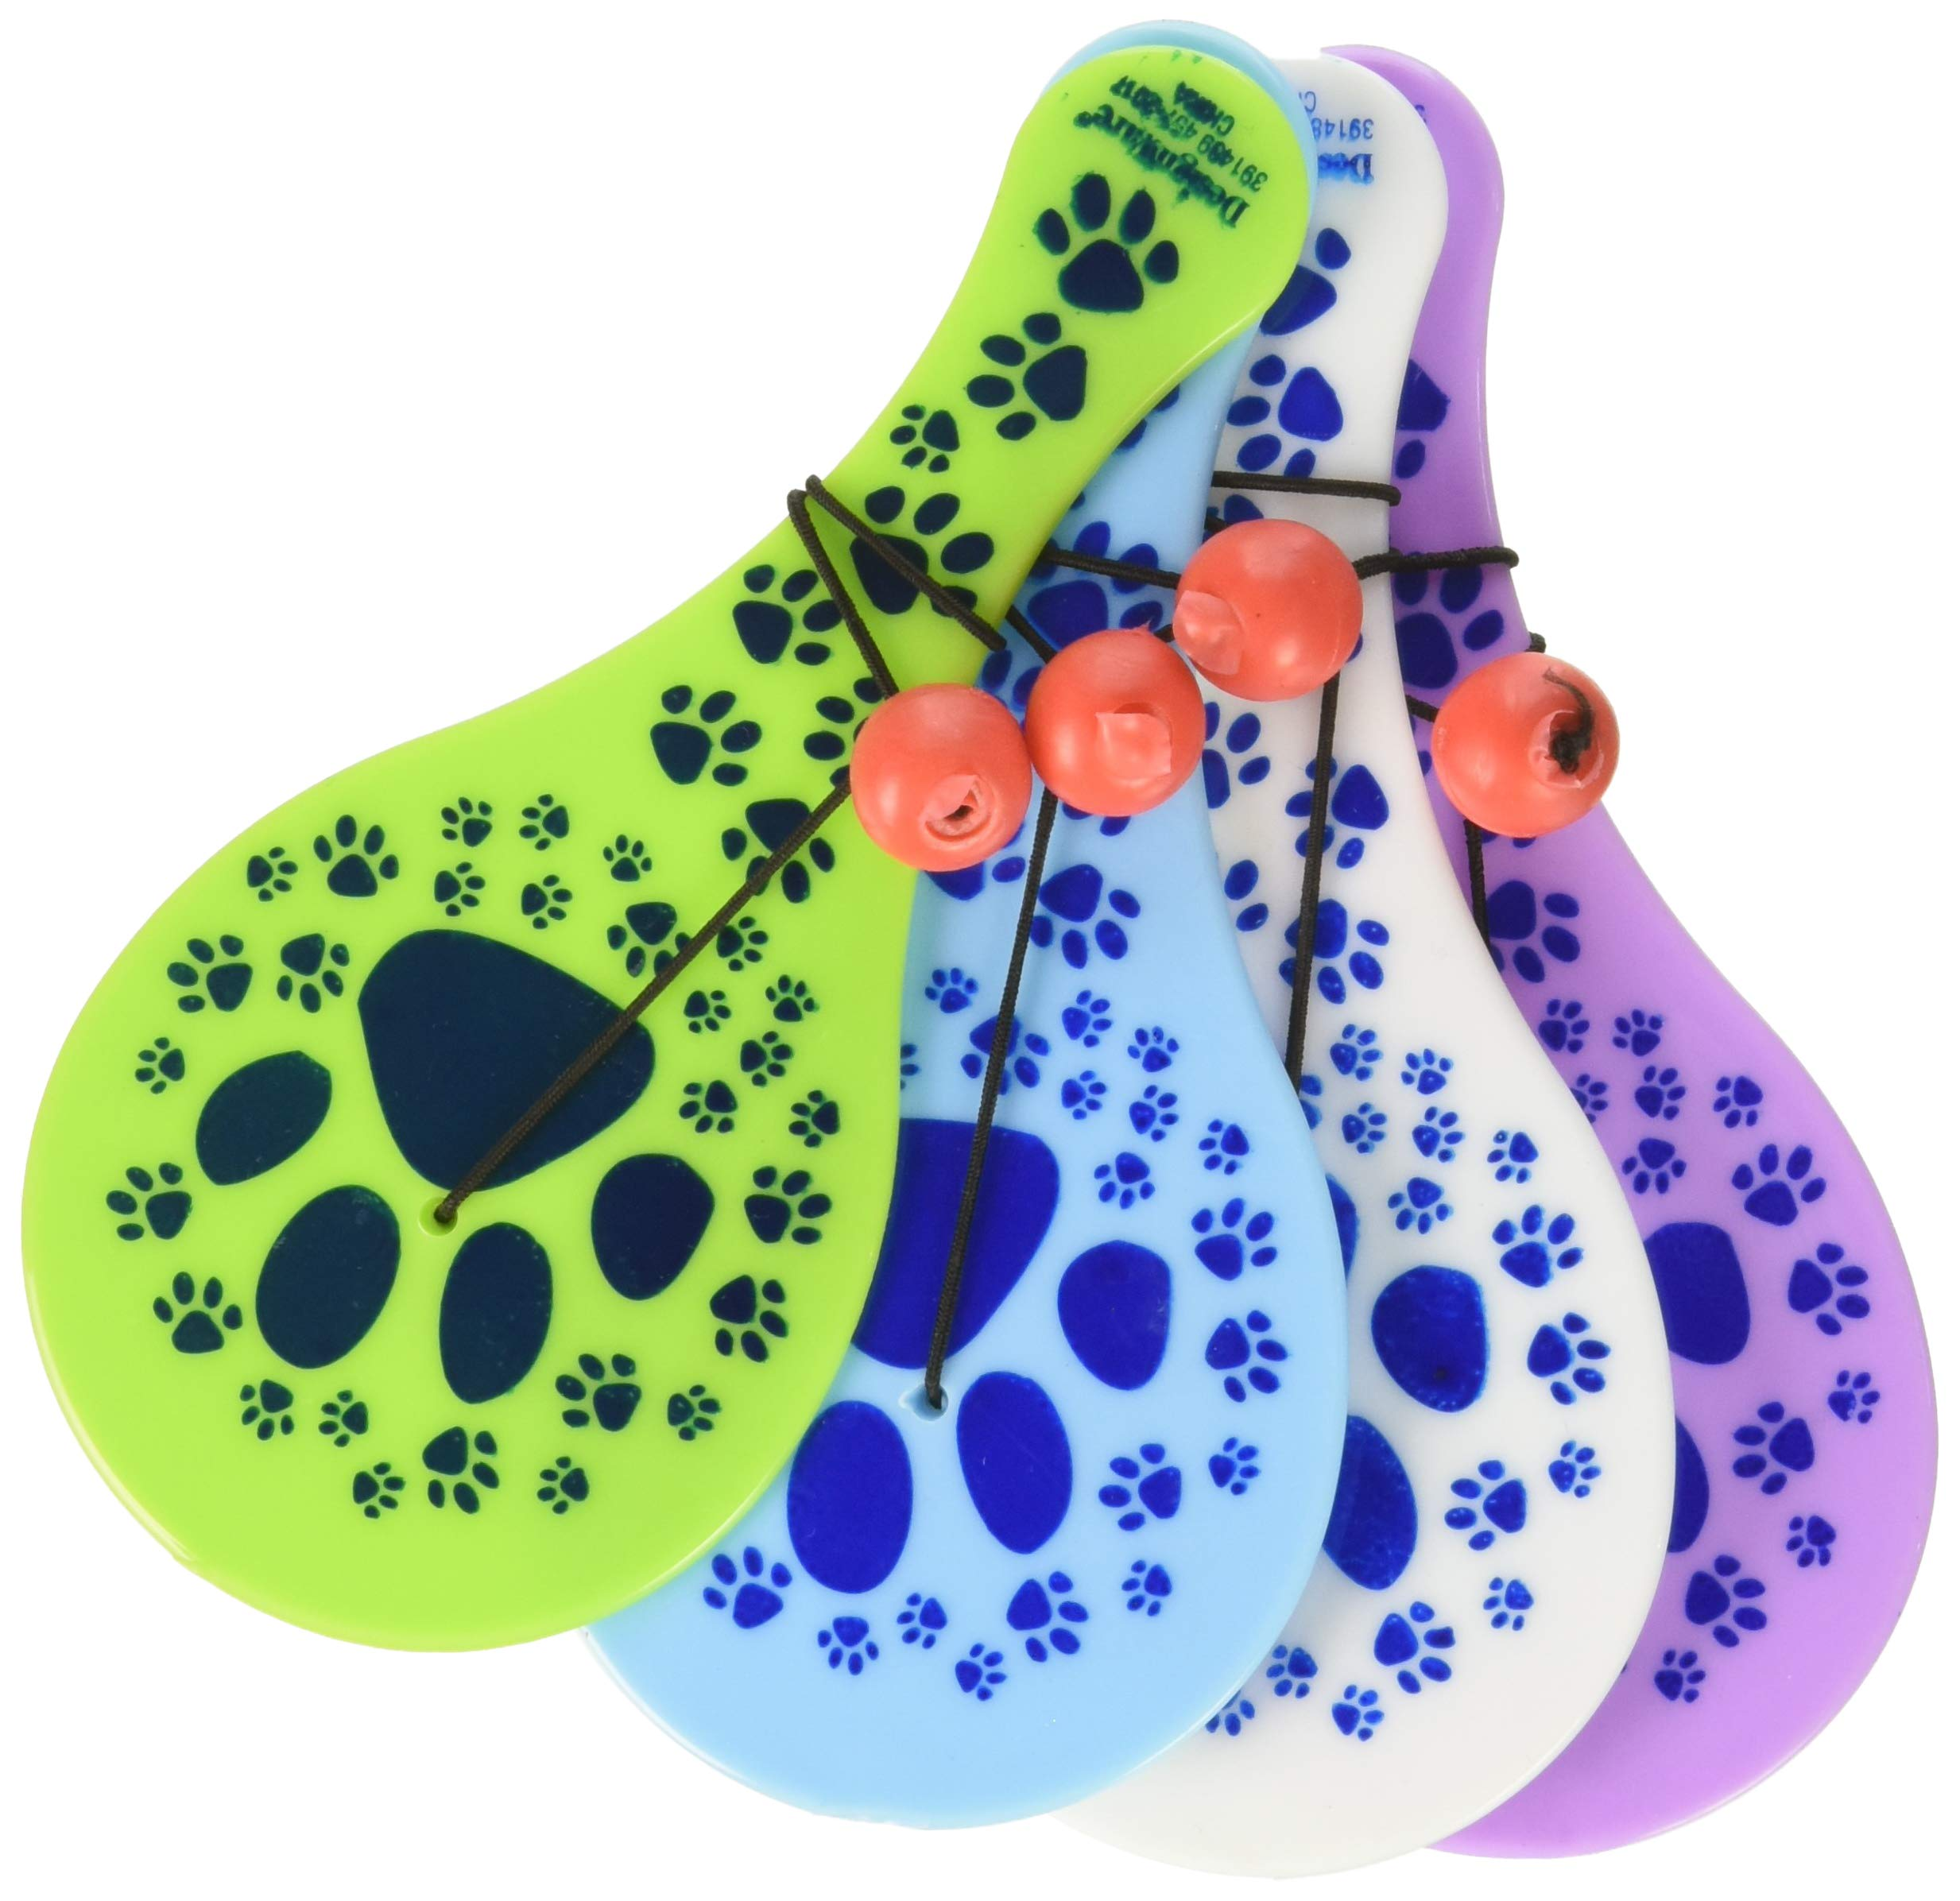 Amscan 391489 Cute Party Pups Paddle Ball Birthday Party Favours Toy & Prize Giveaway (12 Pack), Multi Color; 5 3/4 x 7 1/2 by Amscan (Image #1)